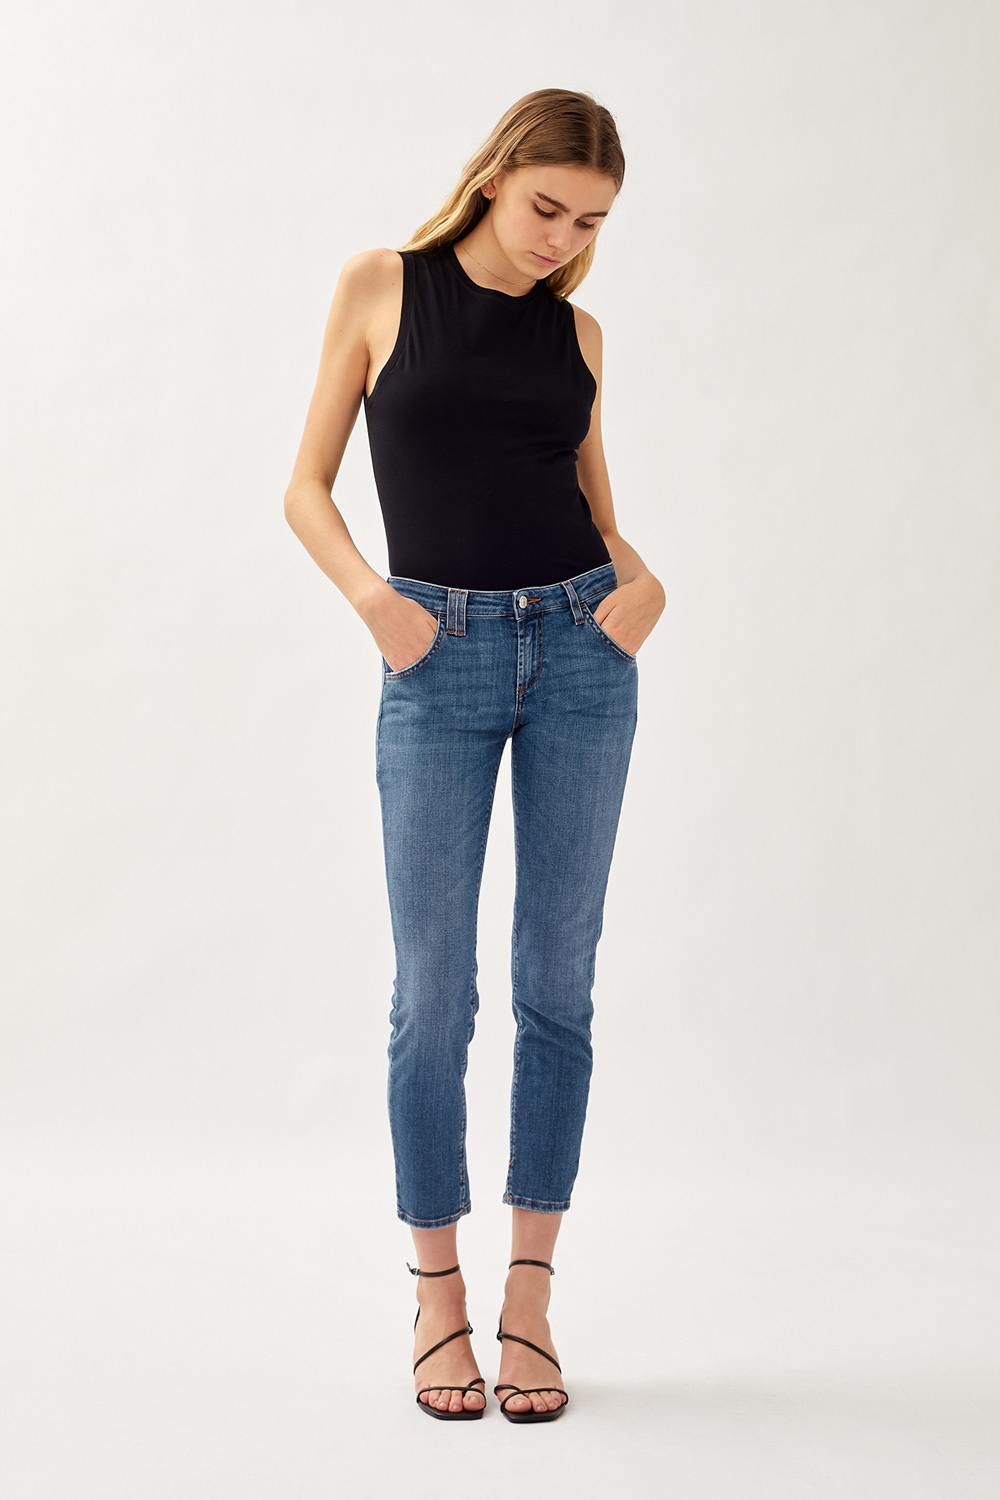 ROY ROGERS: JEANS ELIONOR NOOSA IN DENIM SUPER STRETCH